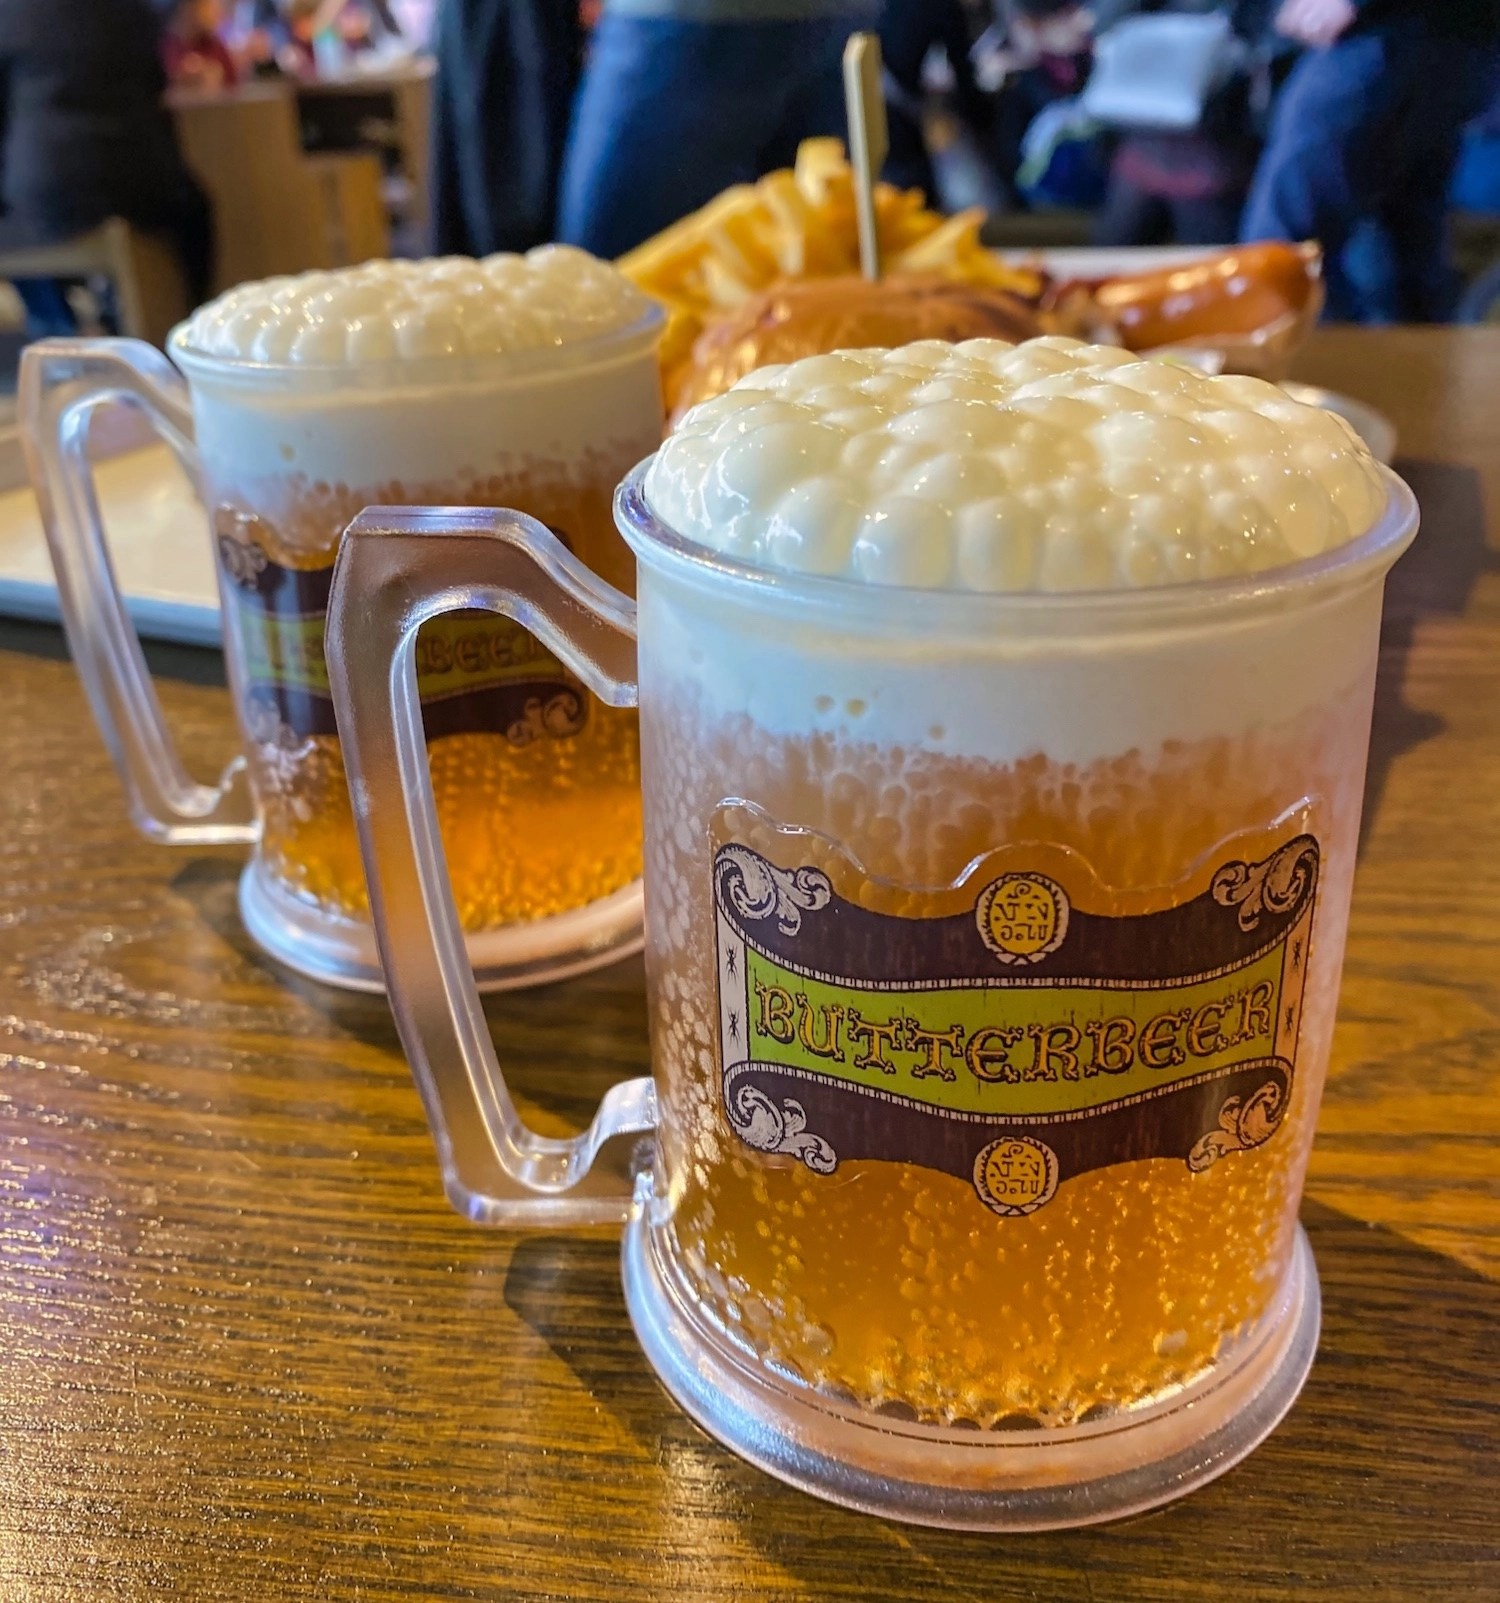 Harry Potter Studio Tour - Backlot Cafe - Butterbeer